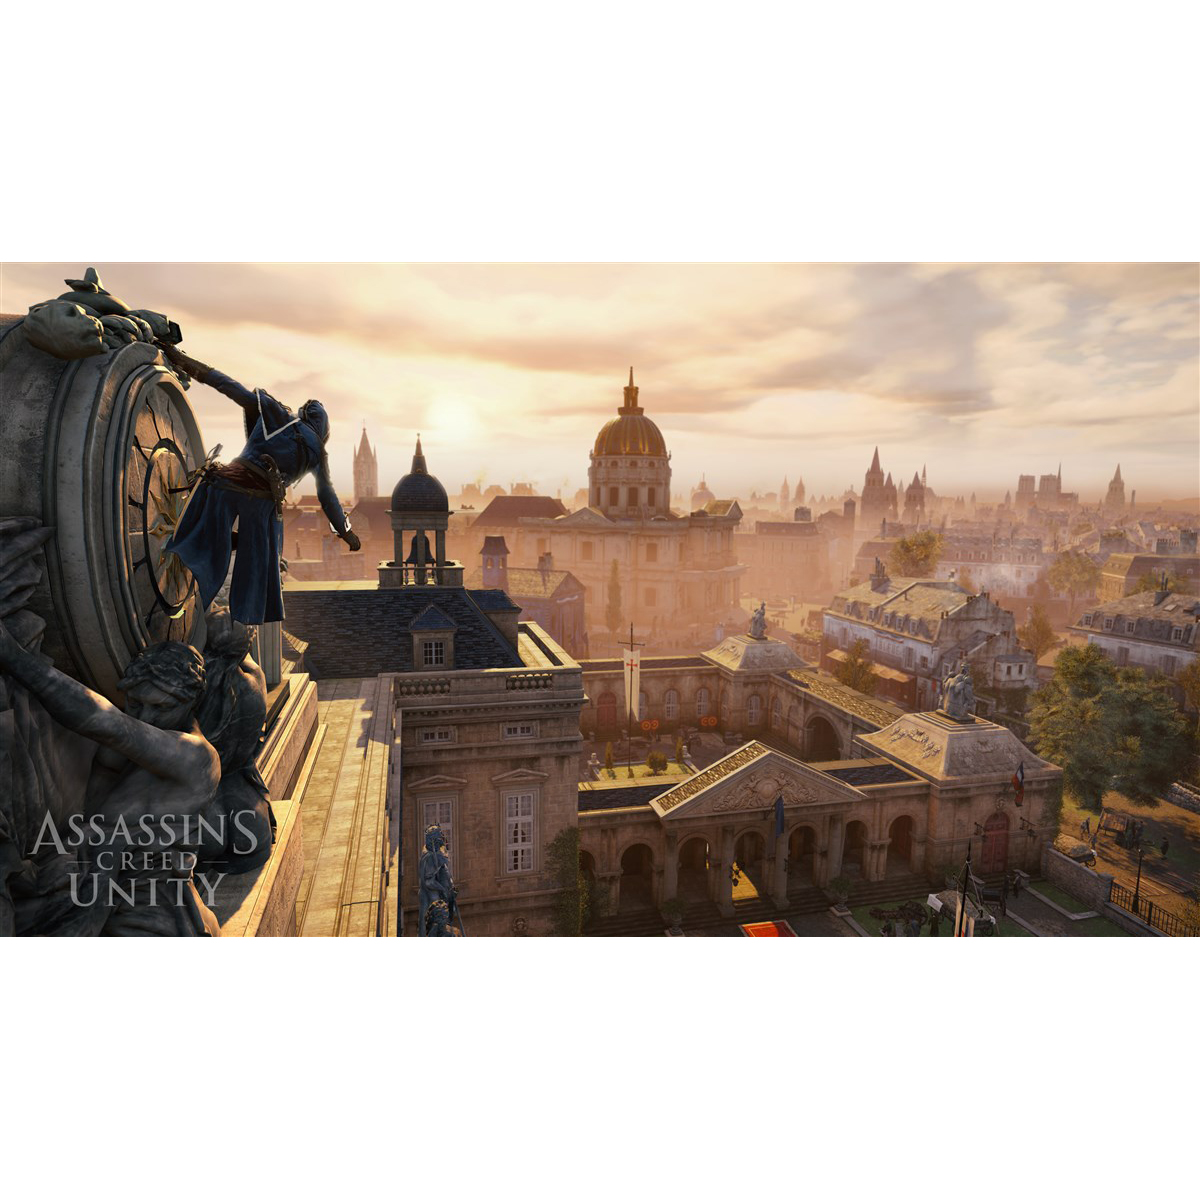 Joc Assassins Creed Unity Greatest Hits pentru Xbox One 2